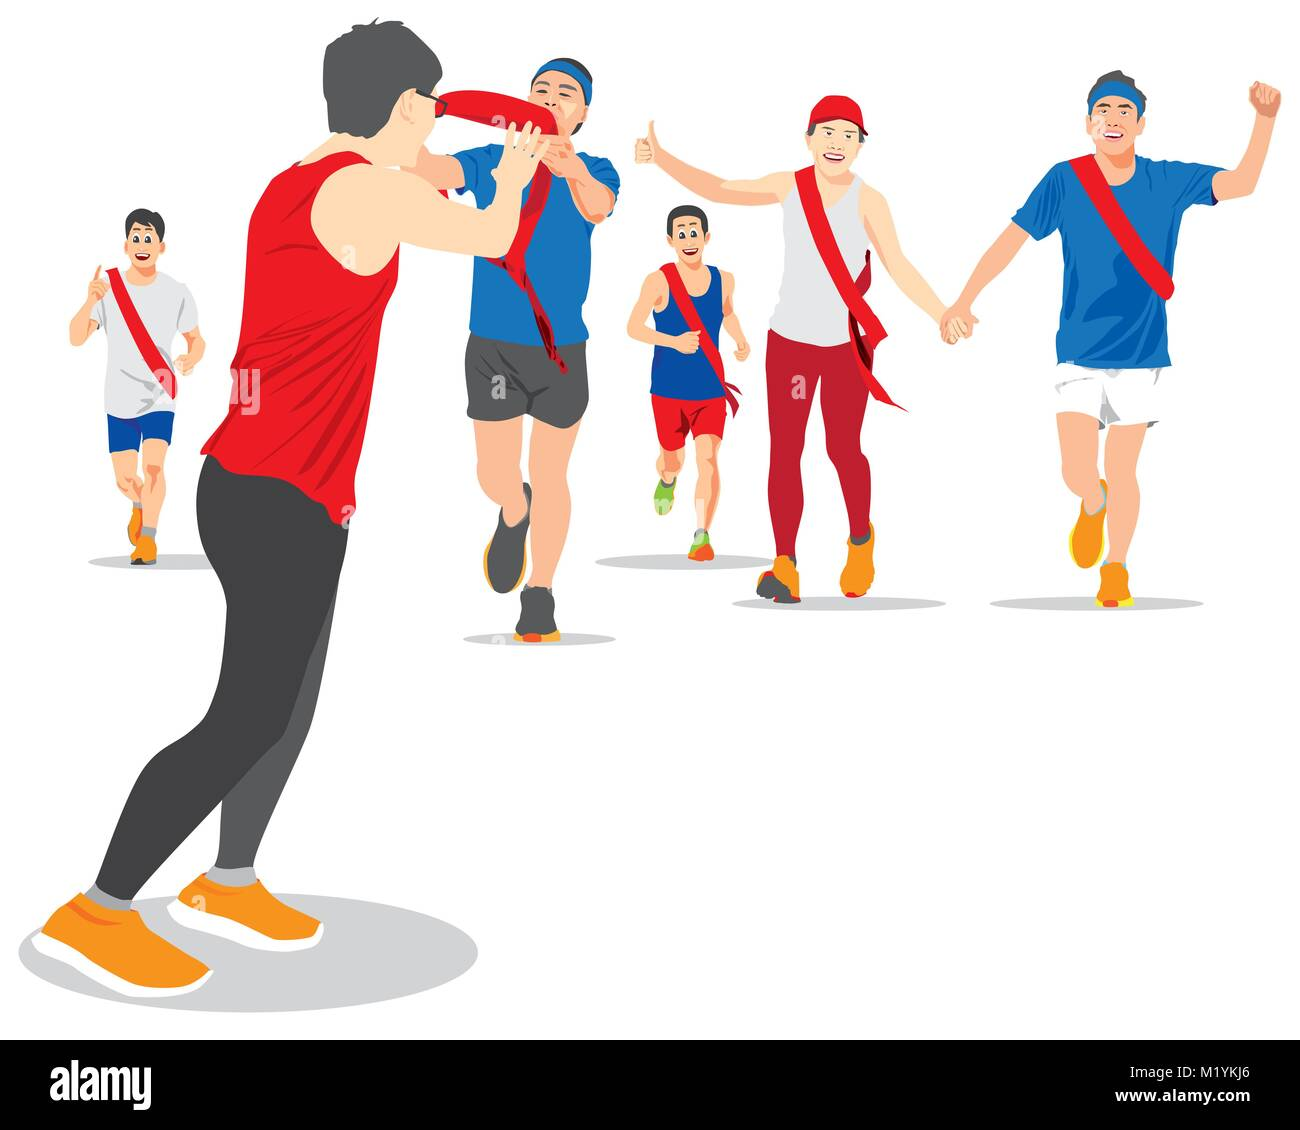 EKIDEN MARATHON WAS BORN IN JAPAN, THE RELAY RUNNERS HAND OVER THEIR SASH TO THE NEXT RUNNER. - Stock Image